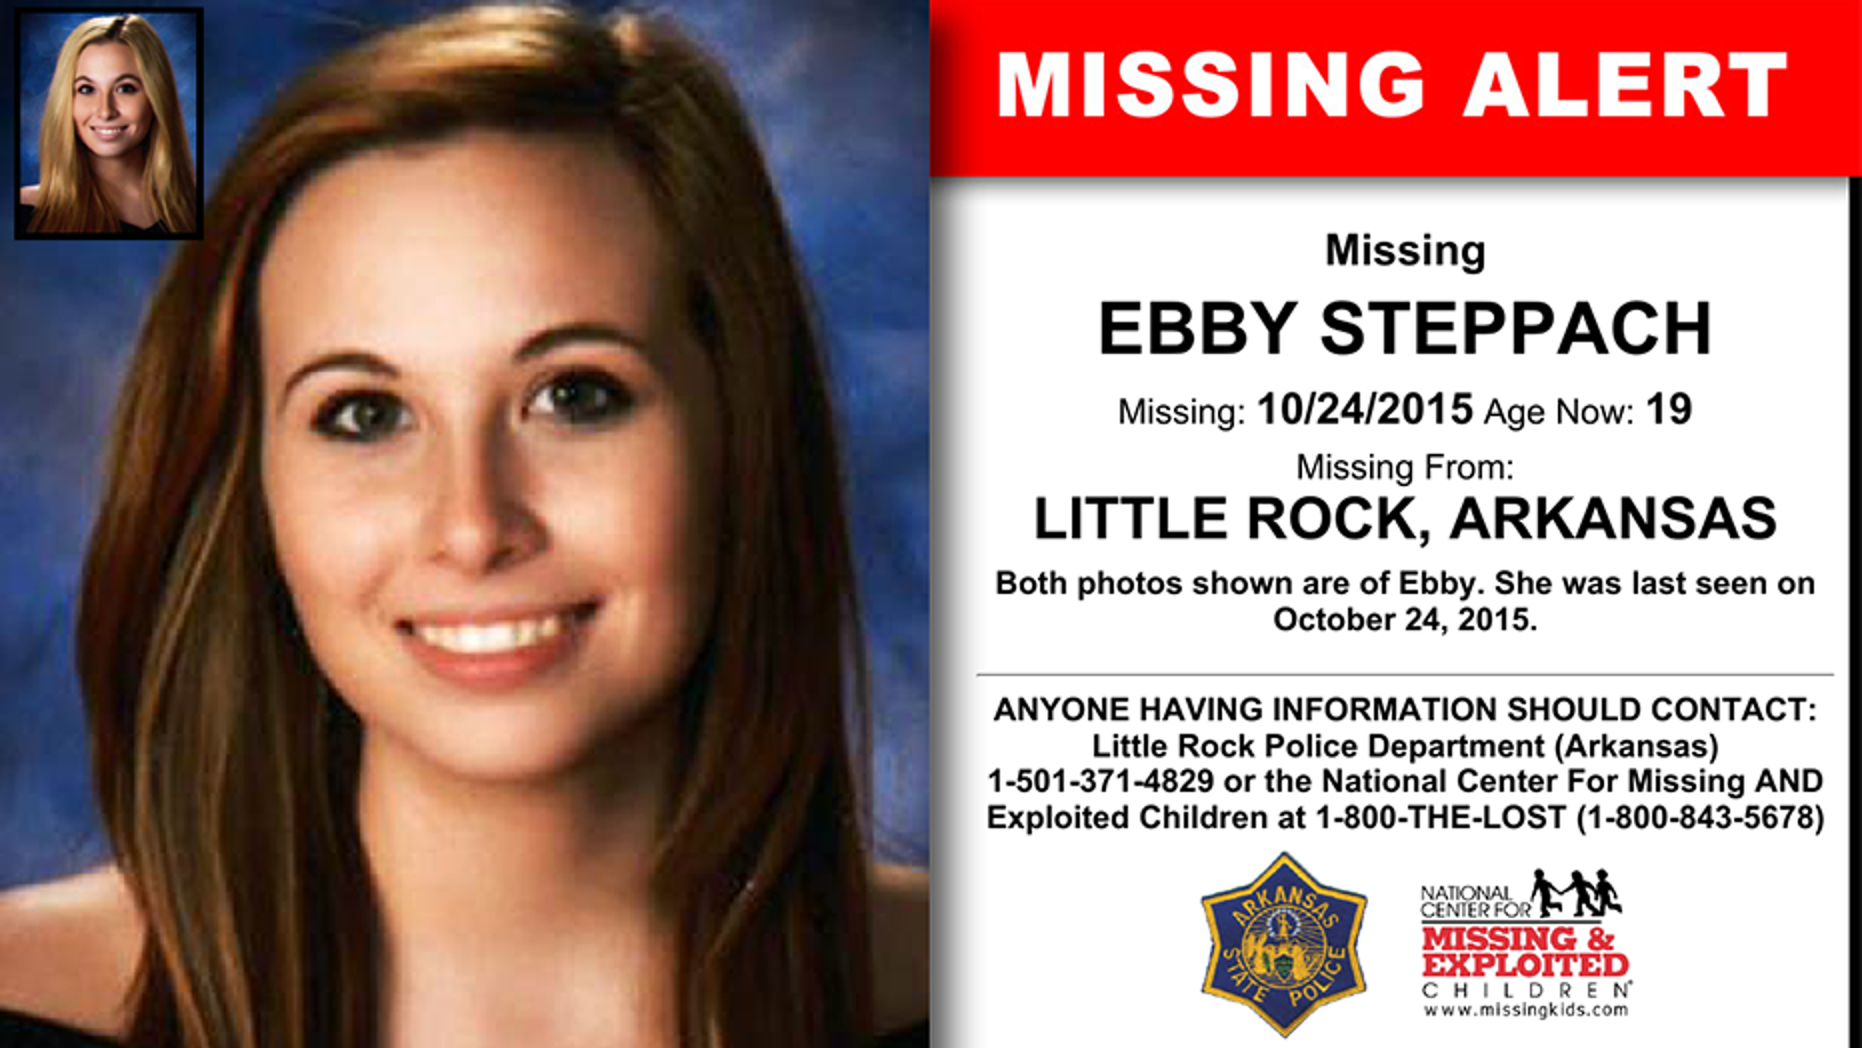 Human remains discovered in an Arkansas park this week were positively identified as those of Ebby Steppach, a teen who went missing in the Little Rock area in 2015.